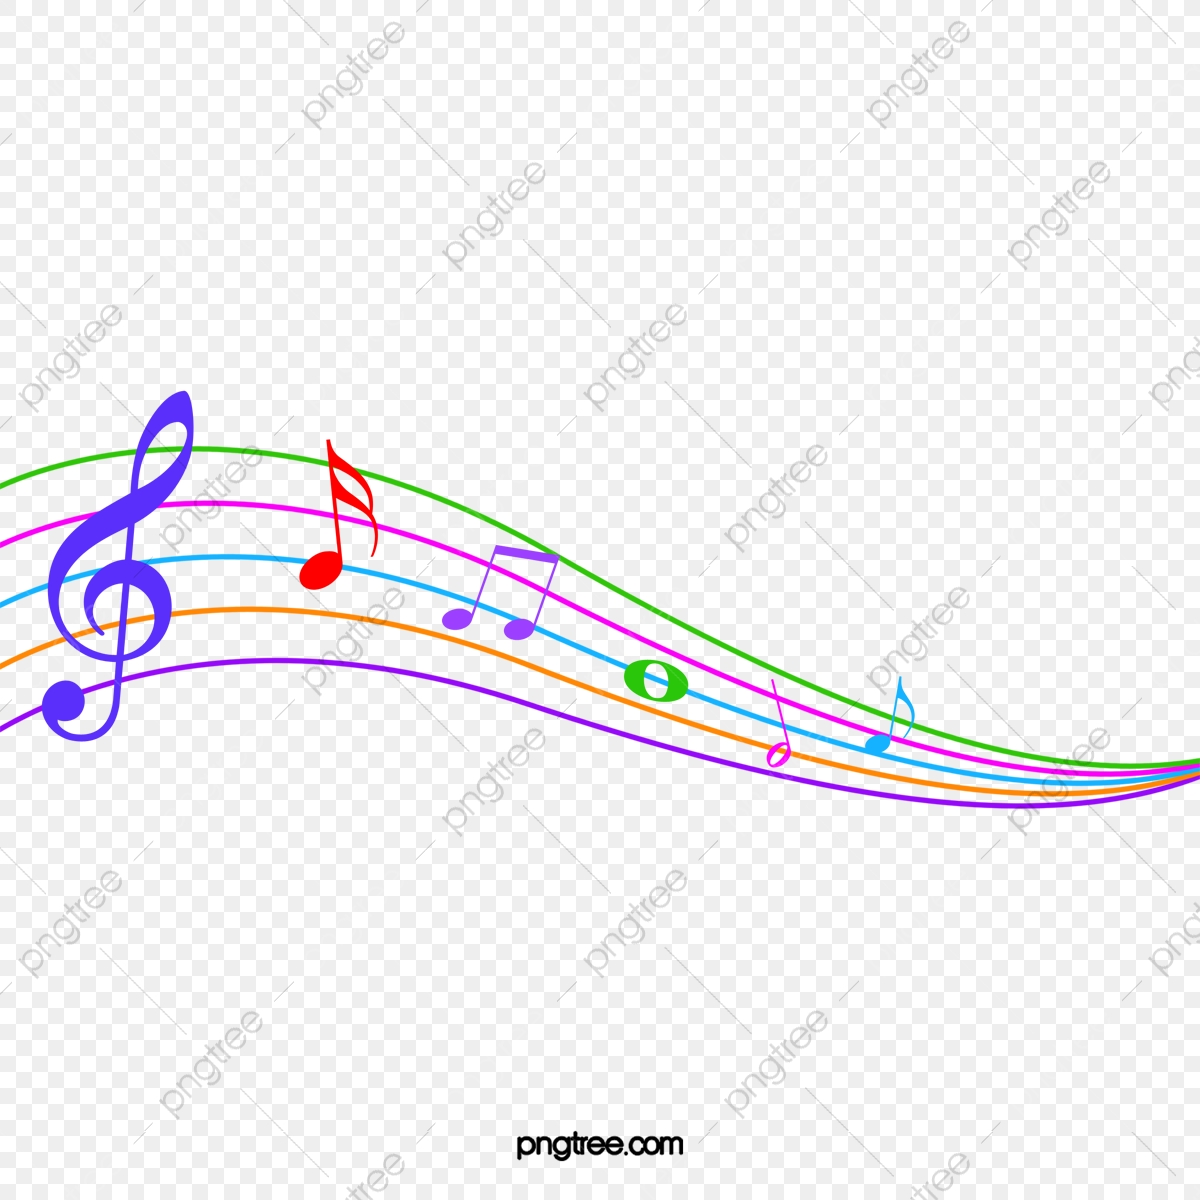 https fr pngtree com freepng colored cartoon musical note stave 2559075 html